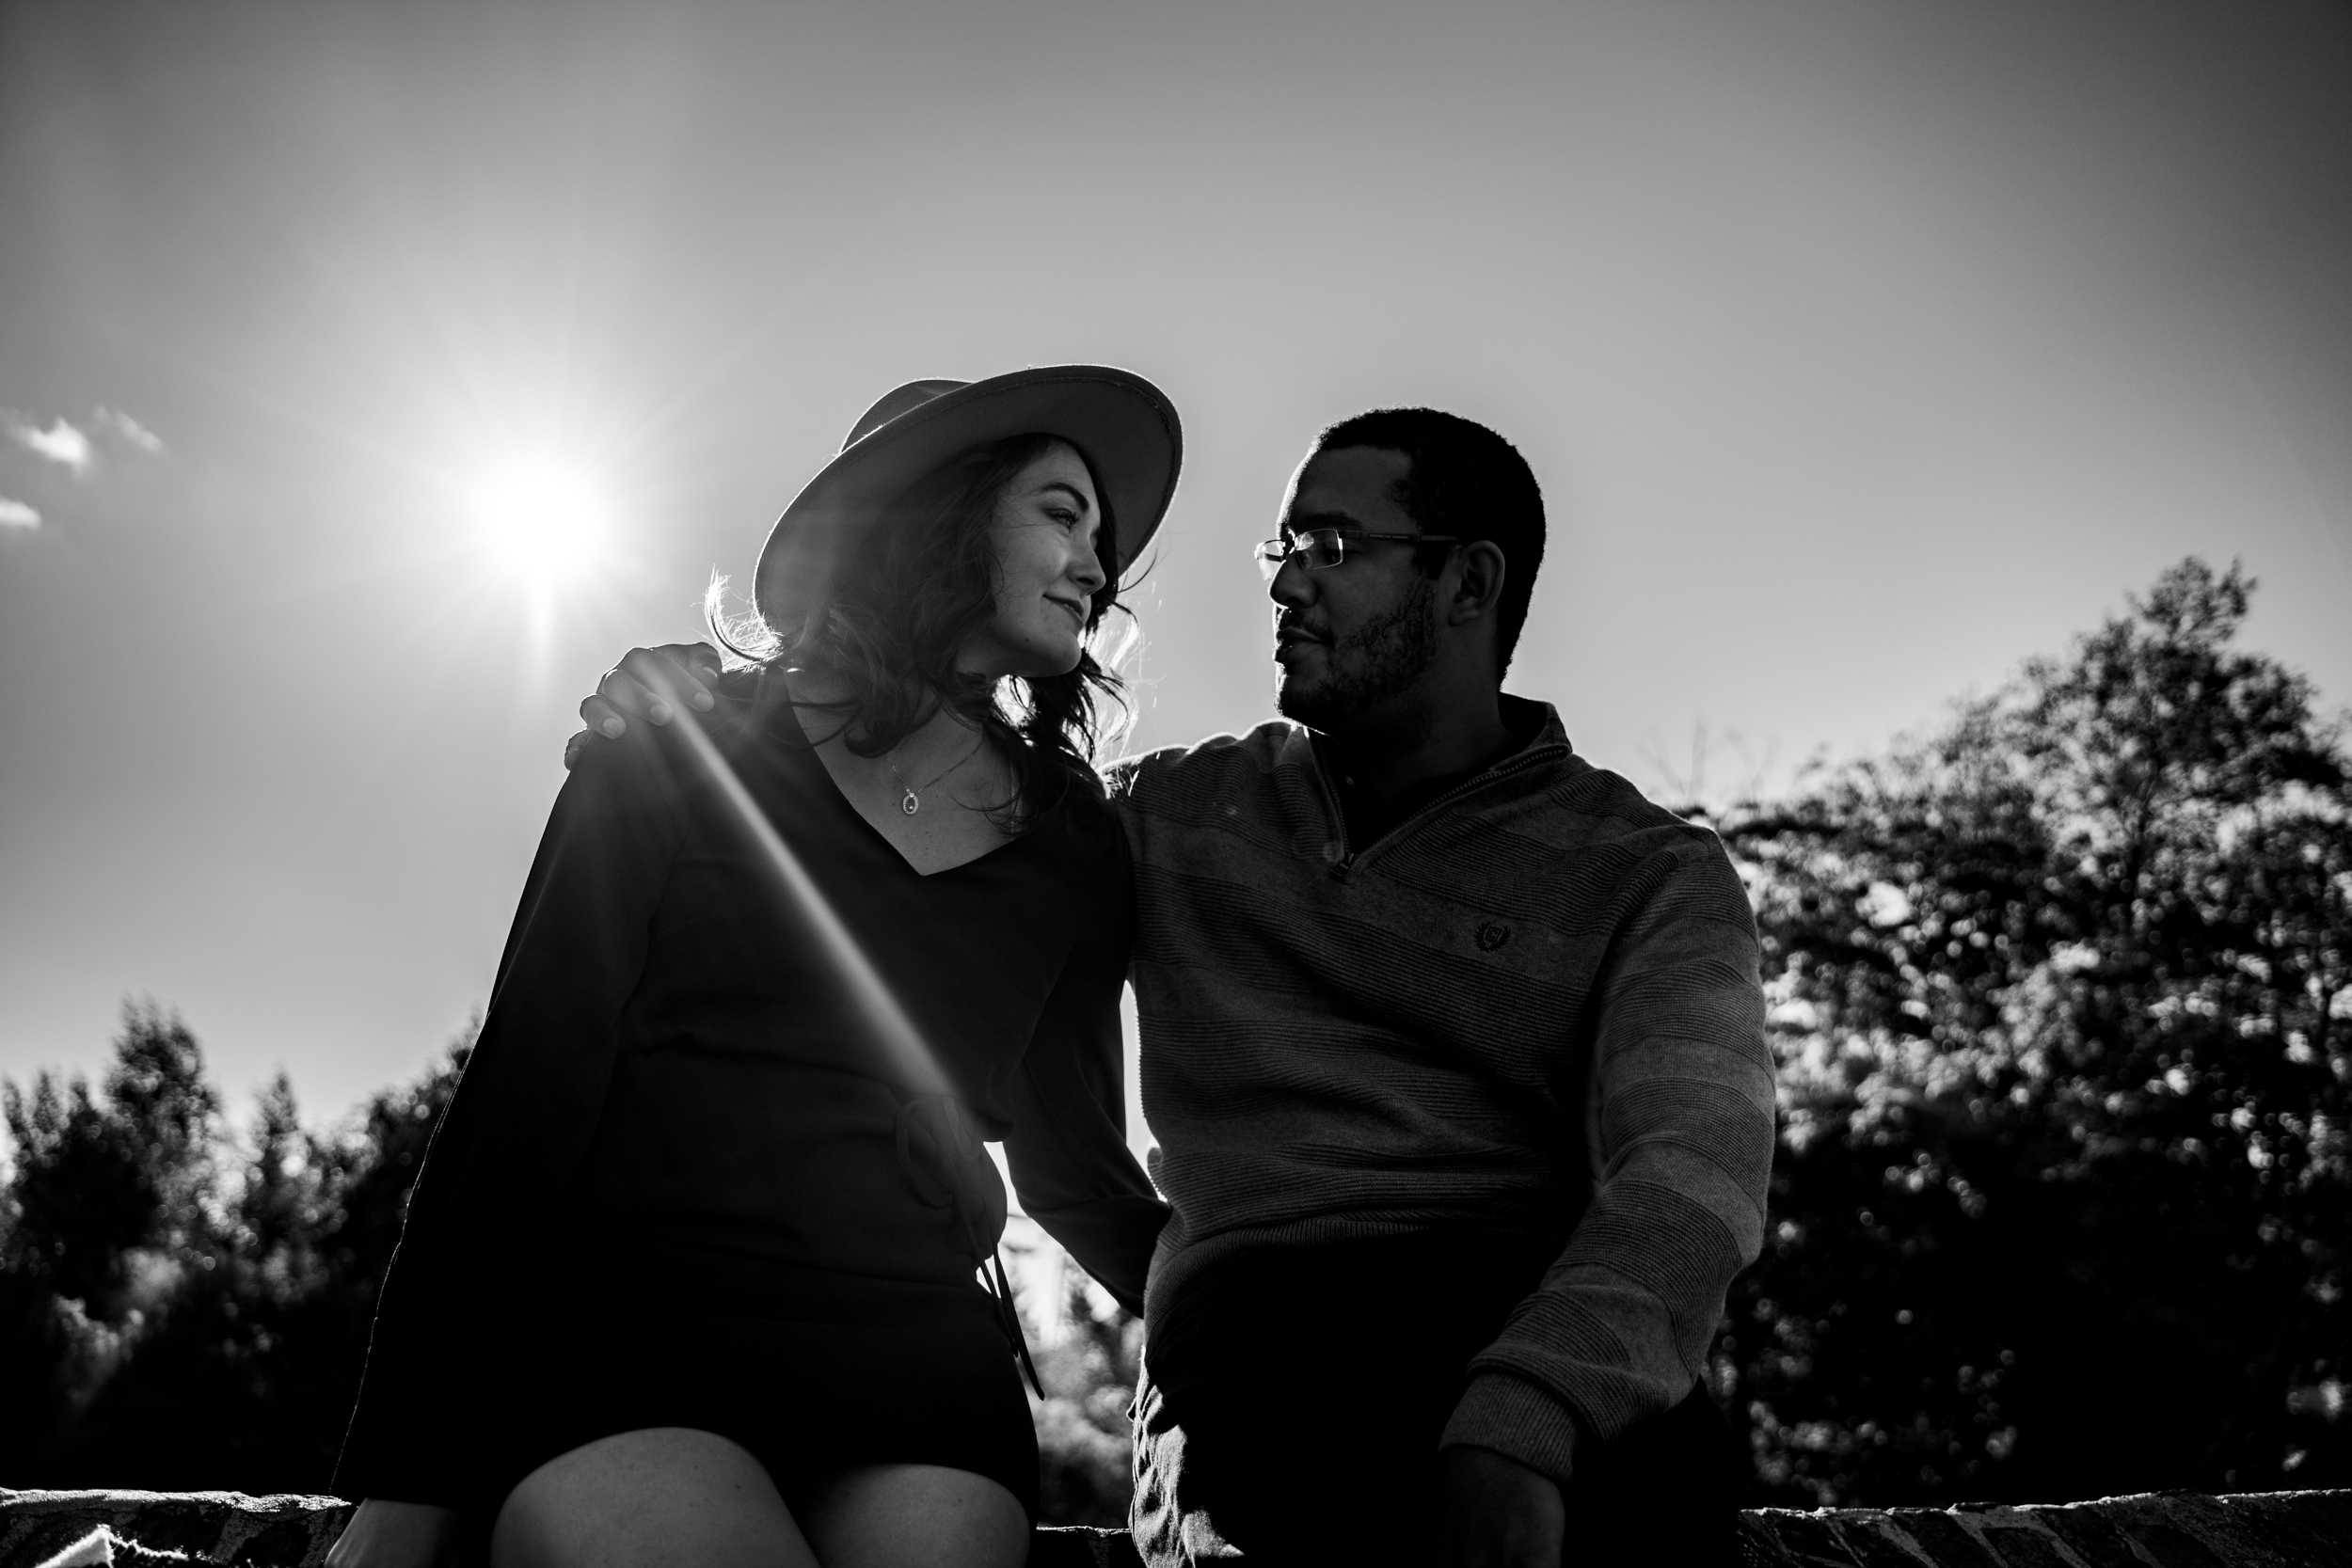 Wedding-halifax-engagement-nova-scotia-ottawa-ontario-pointpleasantpark-Fall-Autumn (14 of 53).jpg